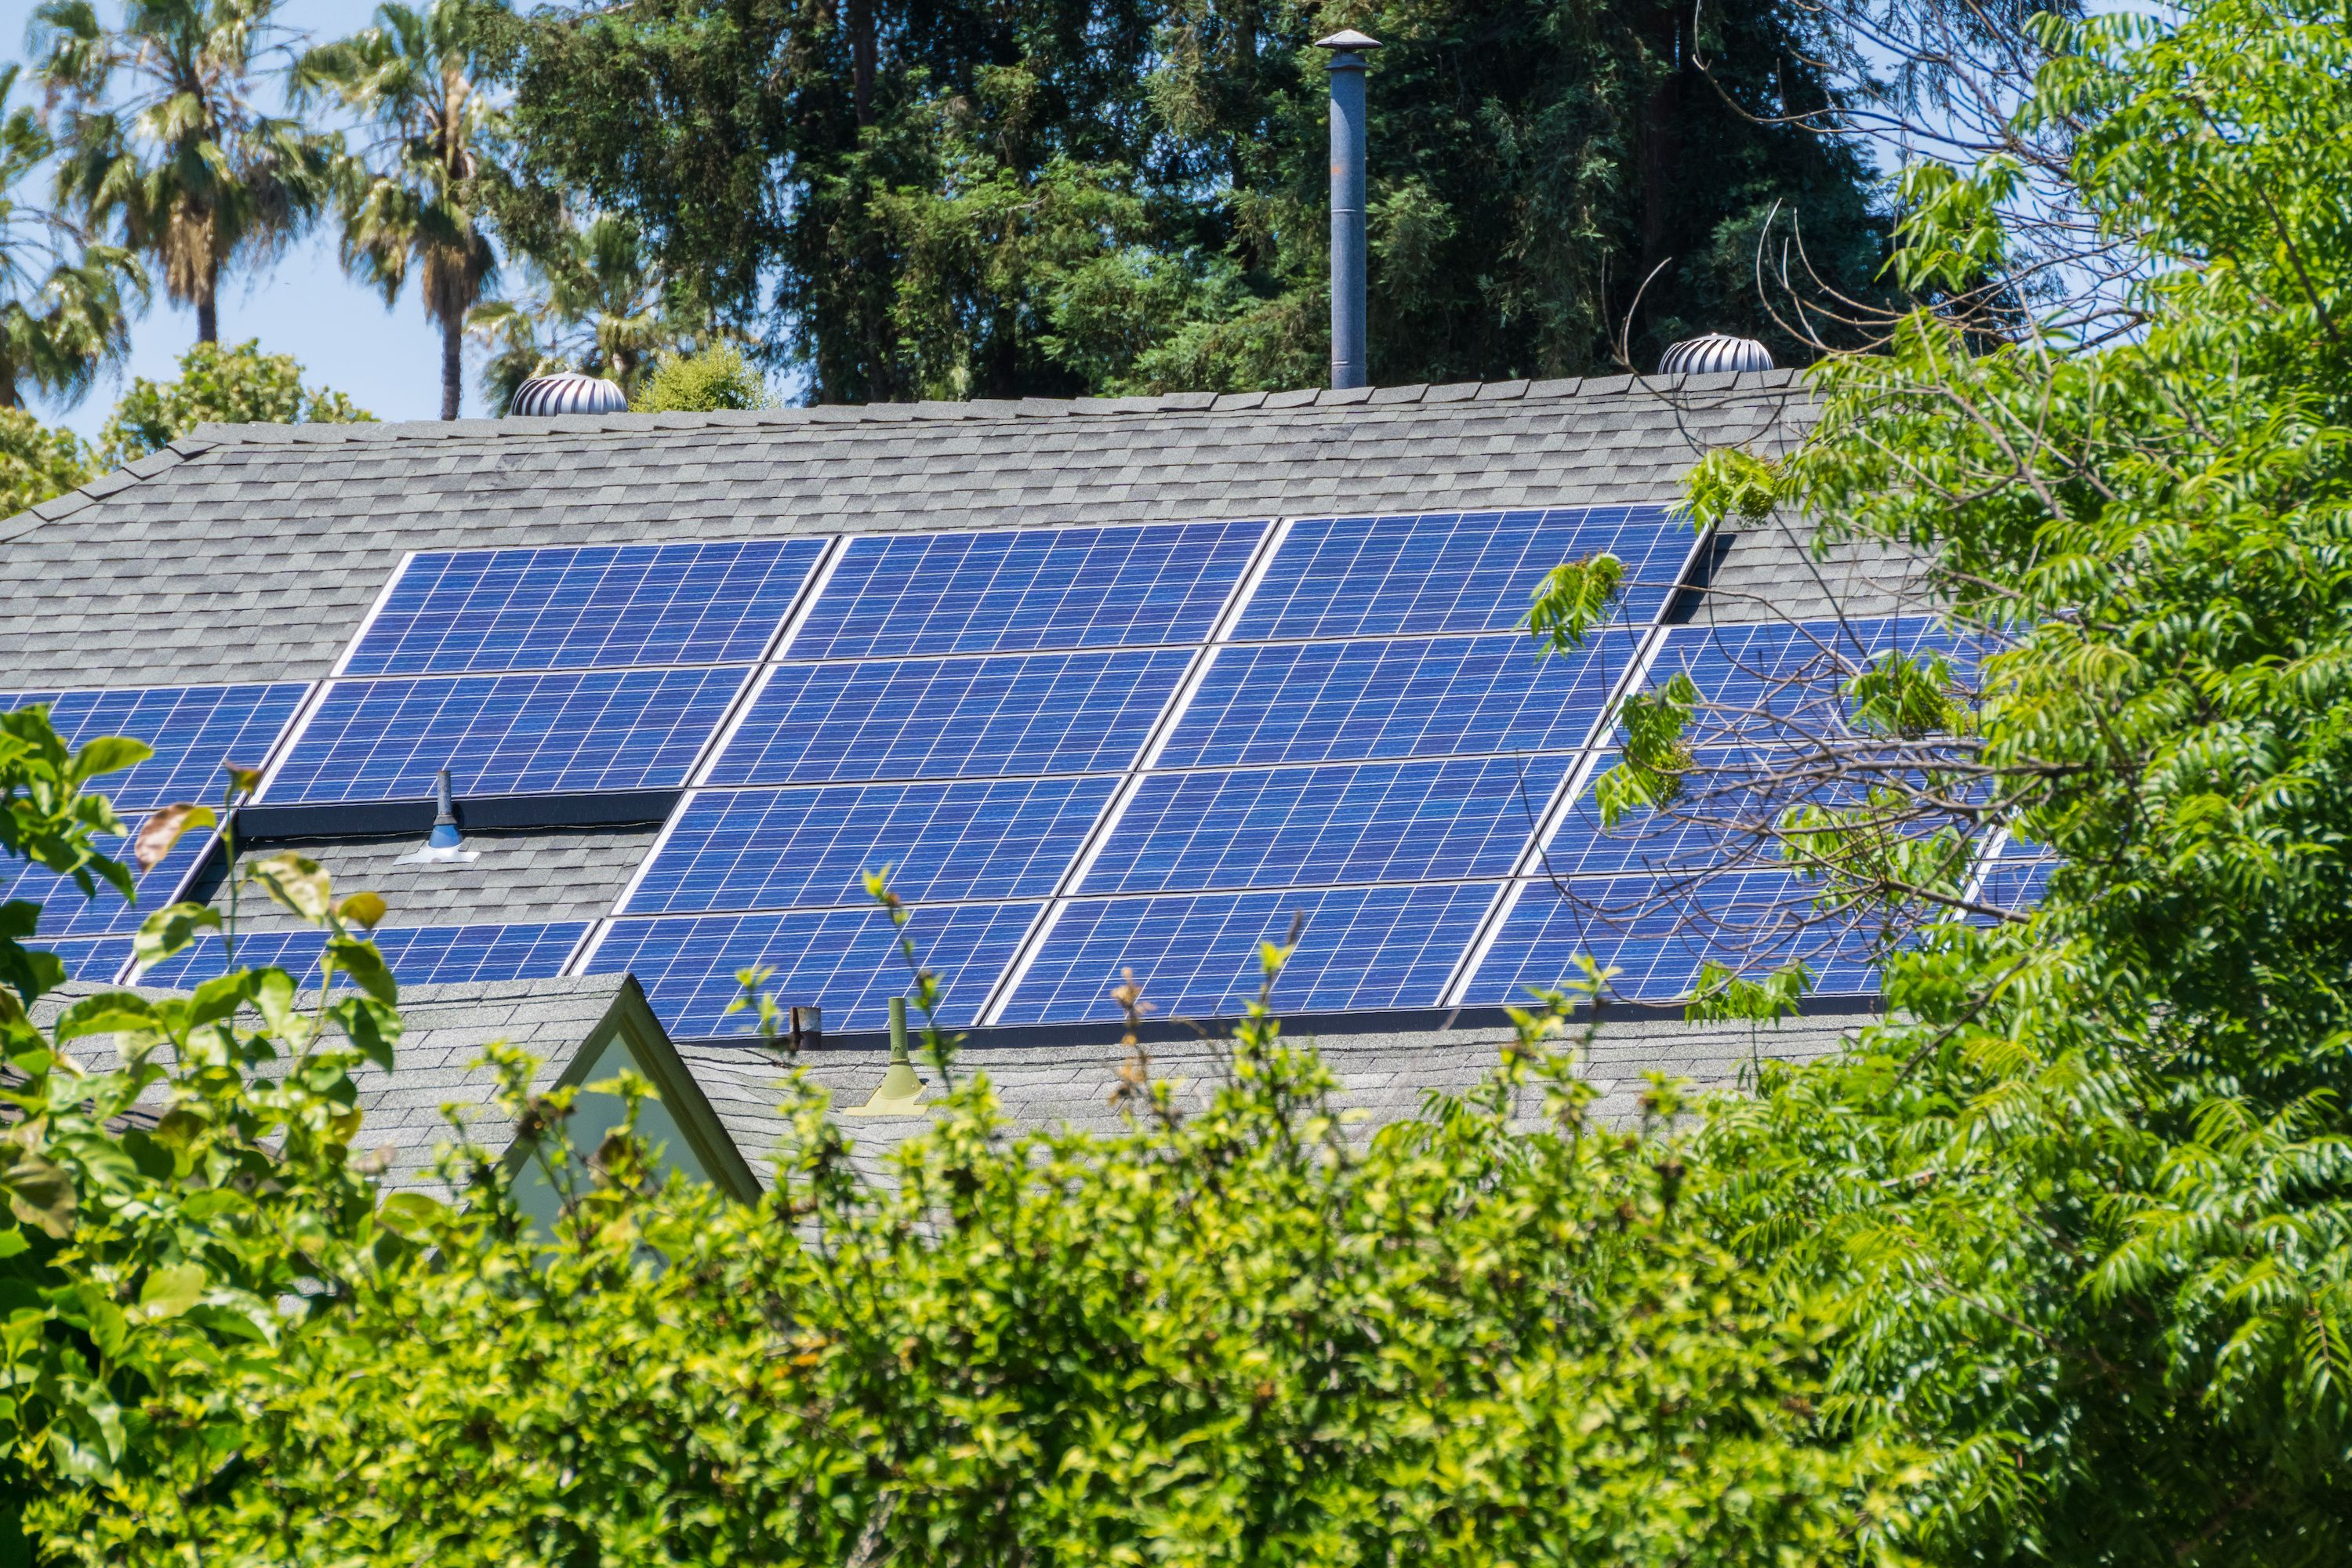 Claremont Solar Panel Cleaning In 2020 Solar Panels Solar Cleaning Service